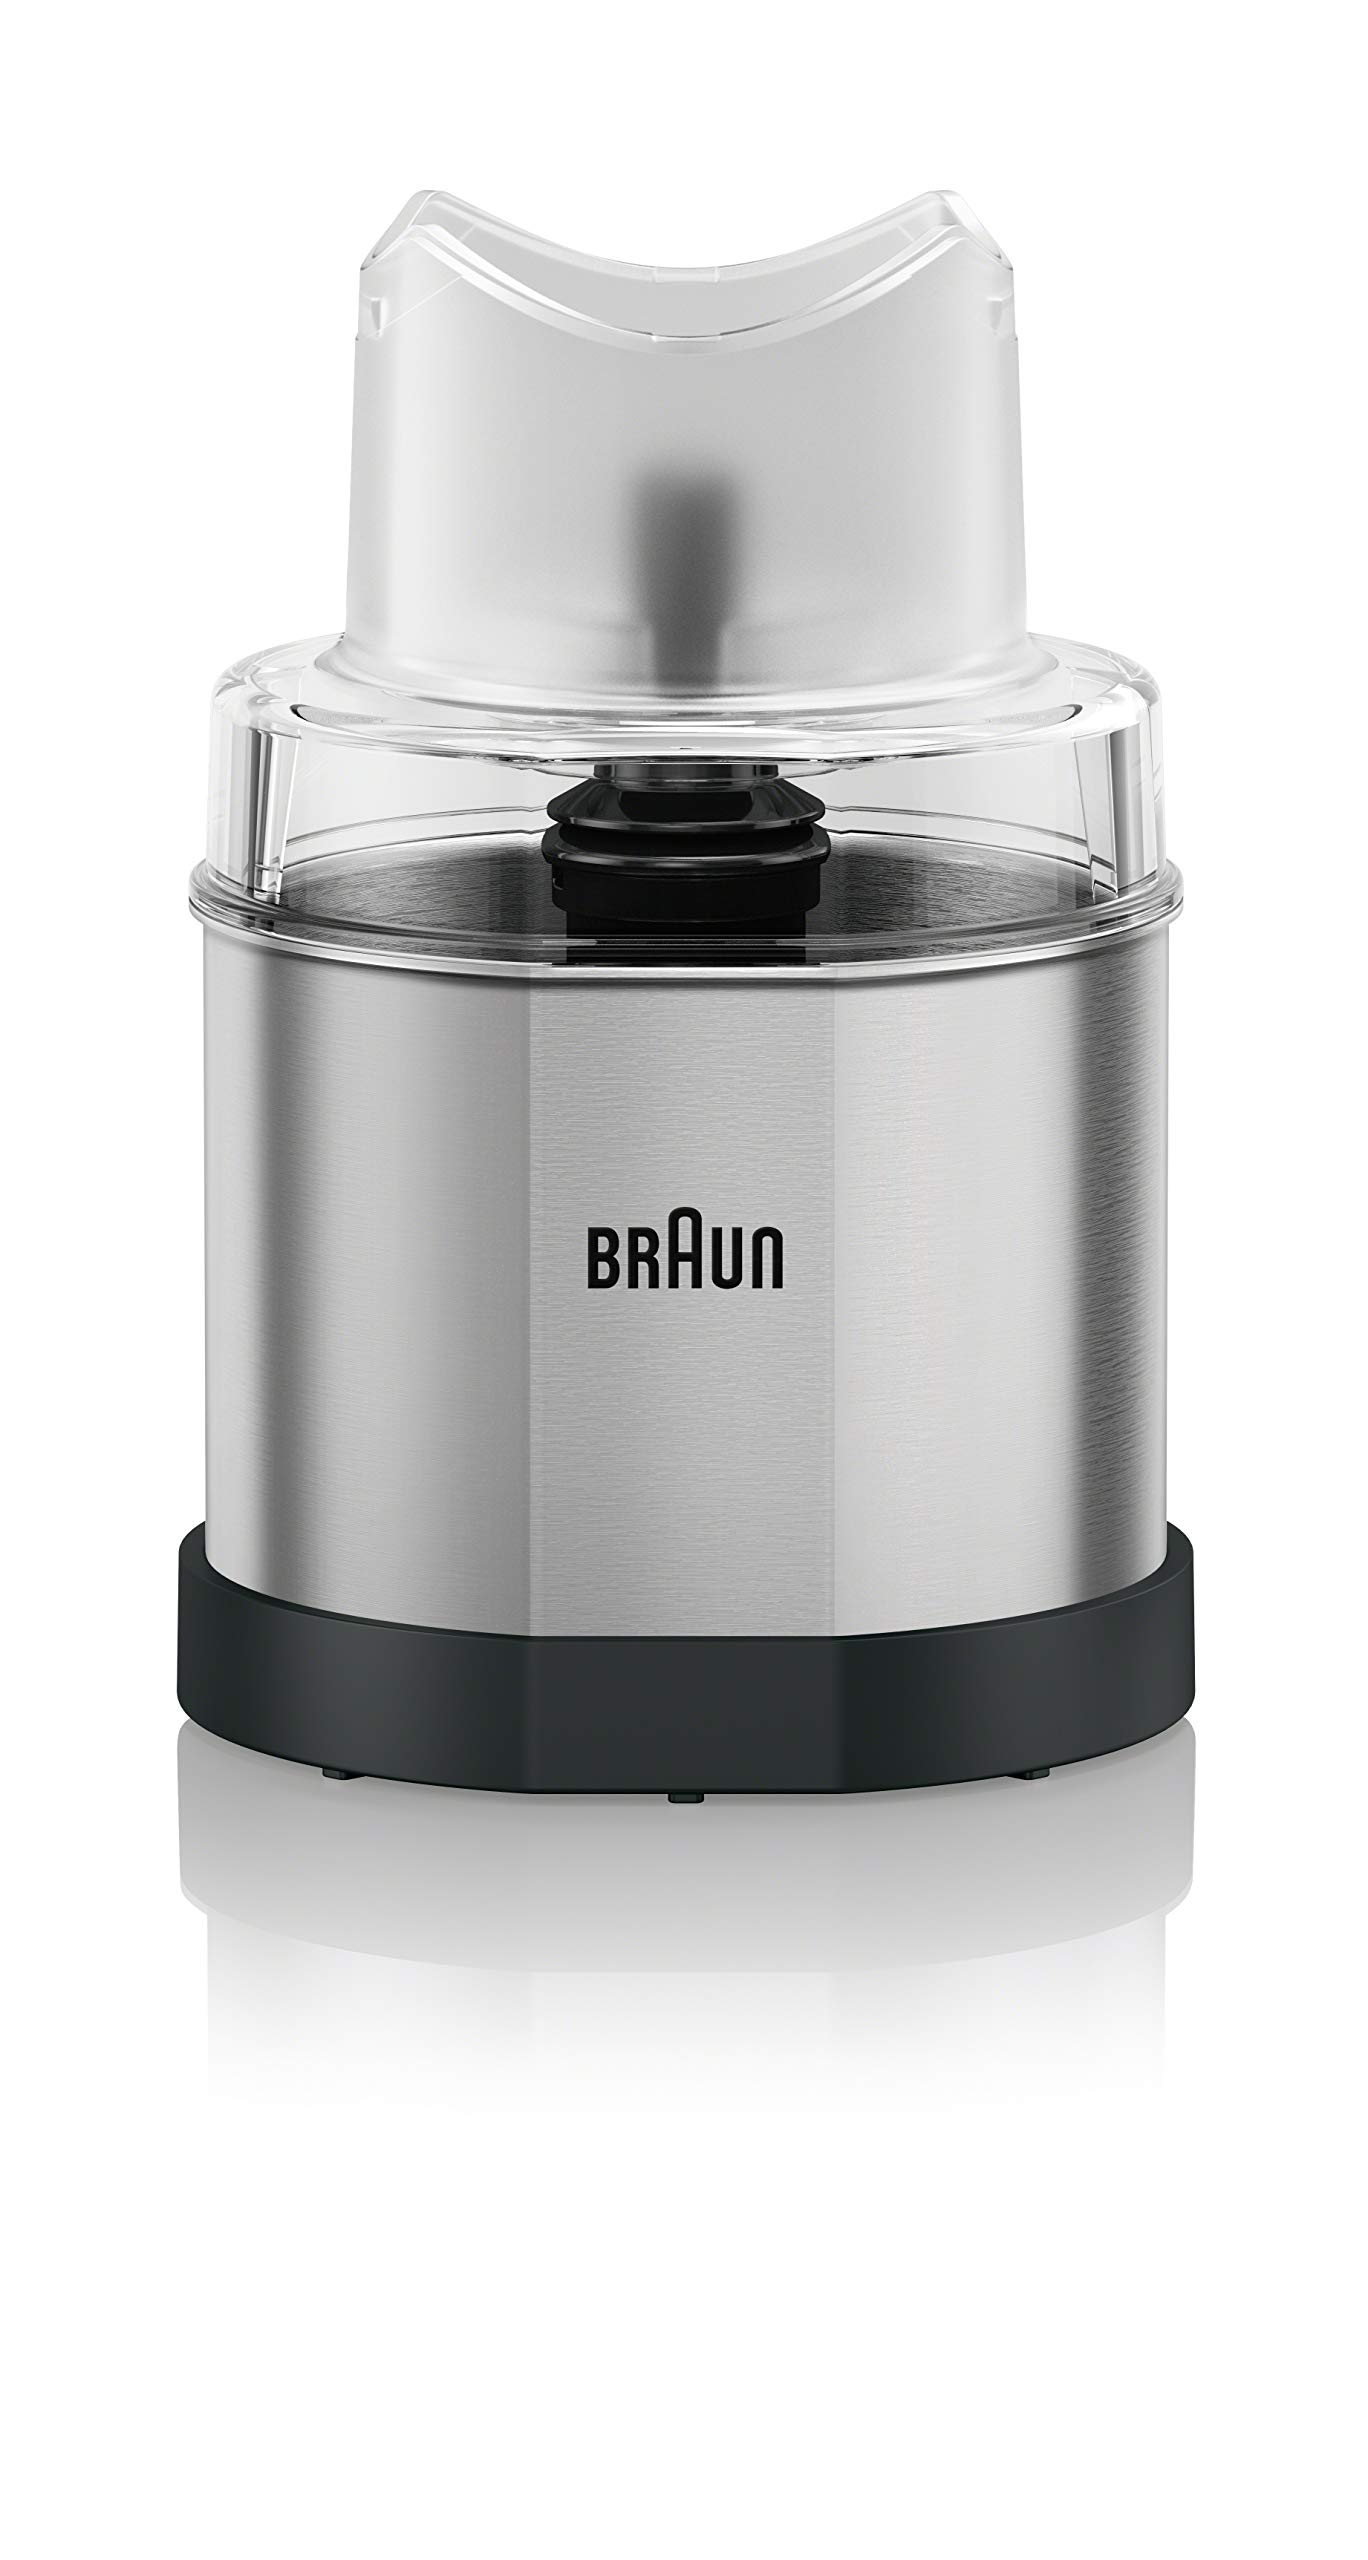 Braun MQ60 MultiQuick Hand Blender Attachment Coffee and Spice Grinder, 1.5-Cup, Stainless Steel